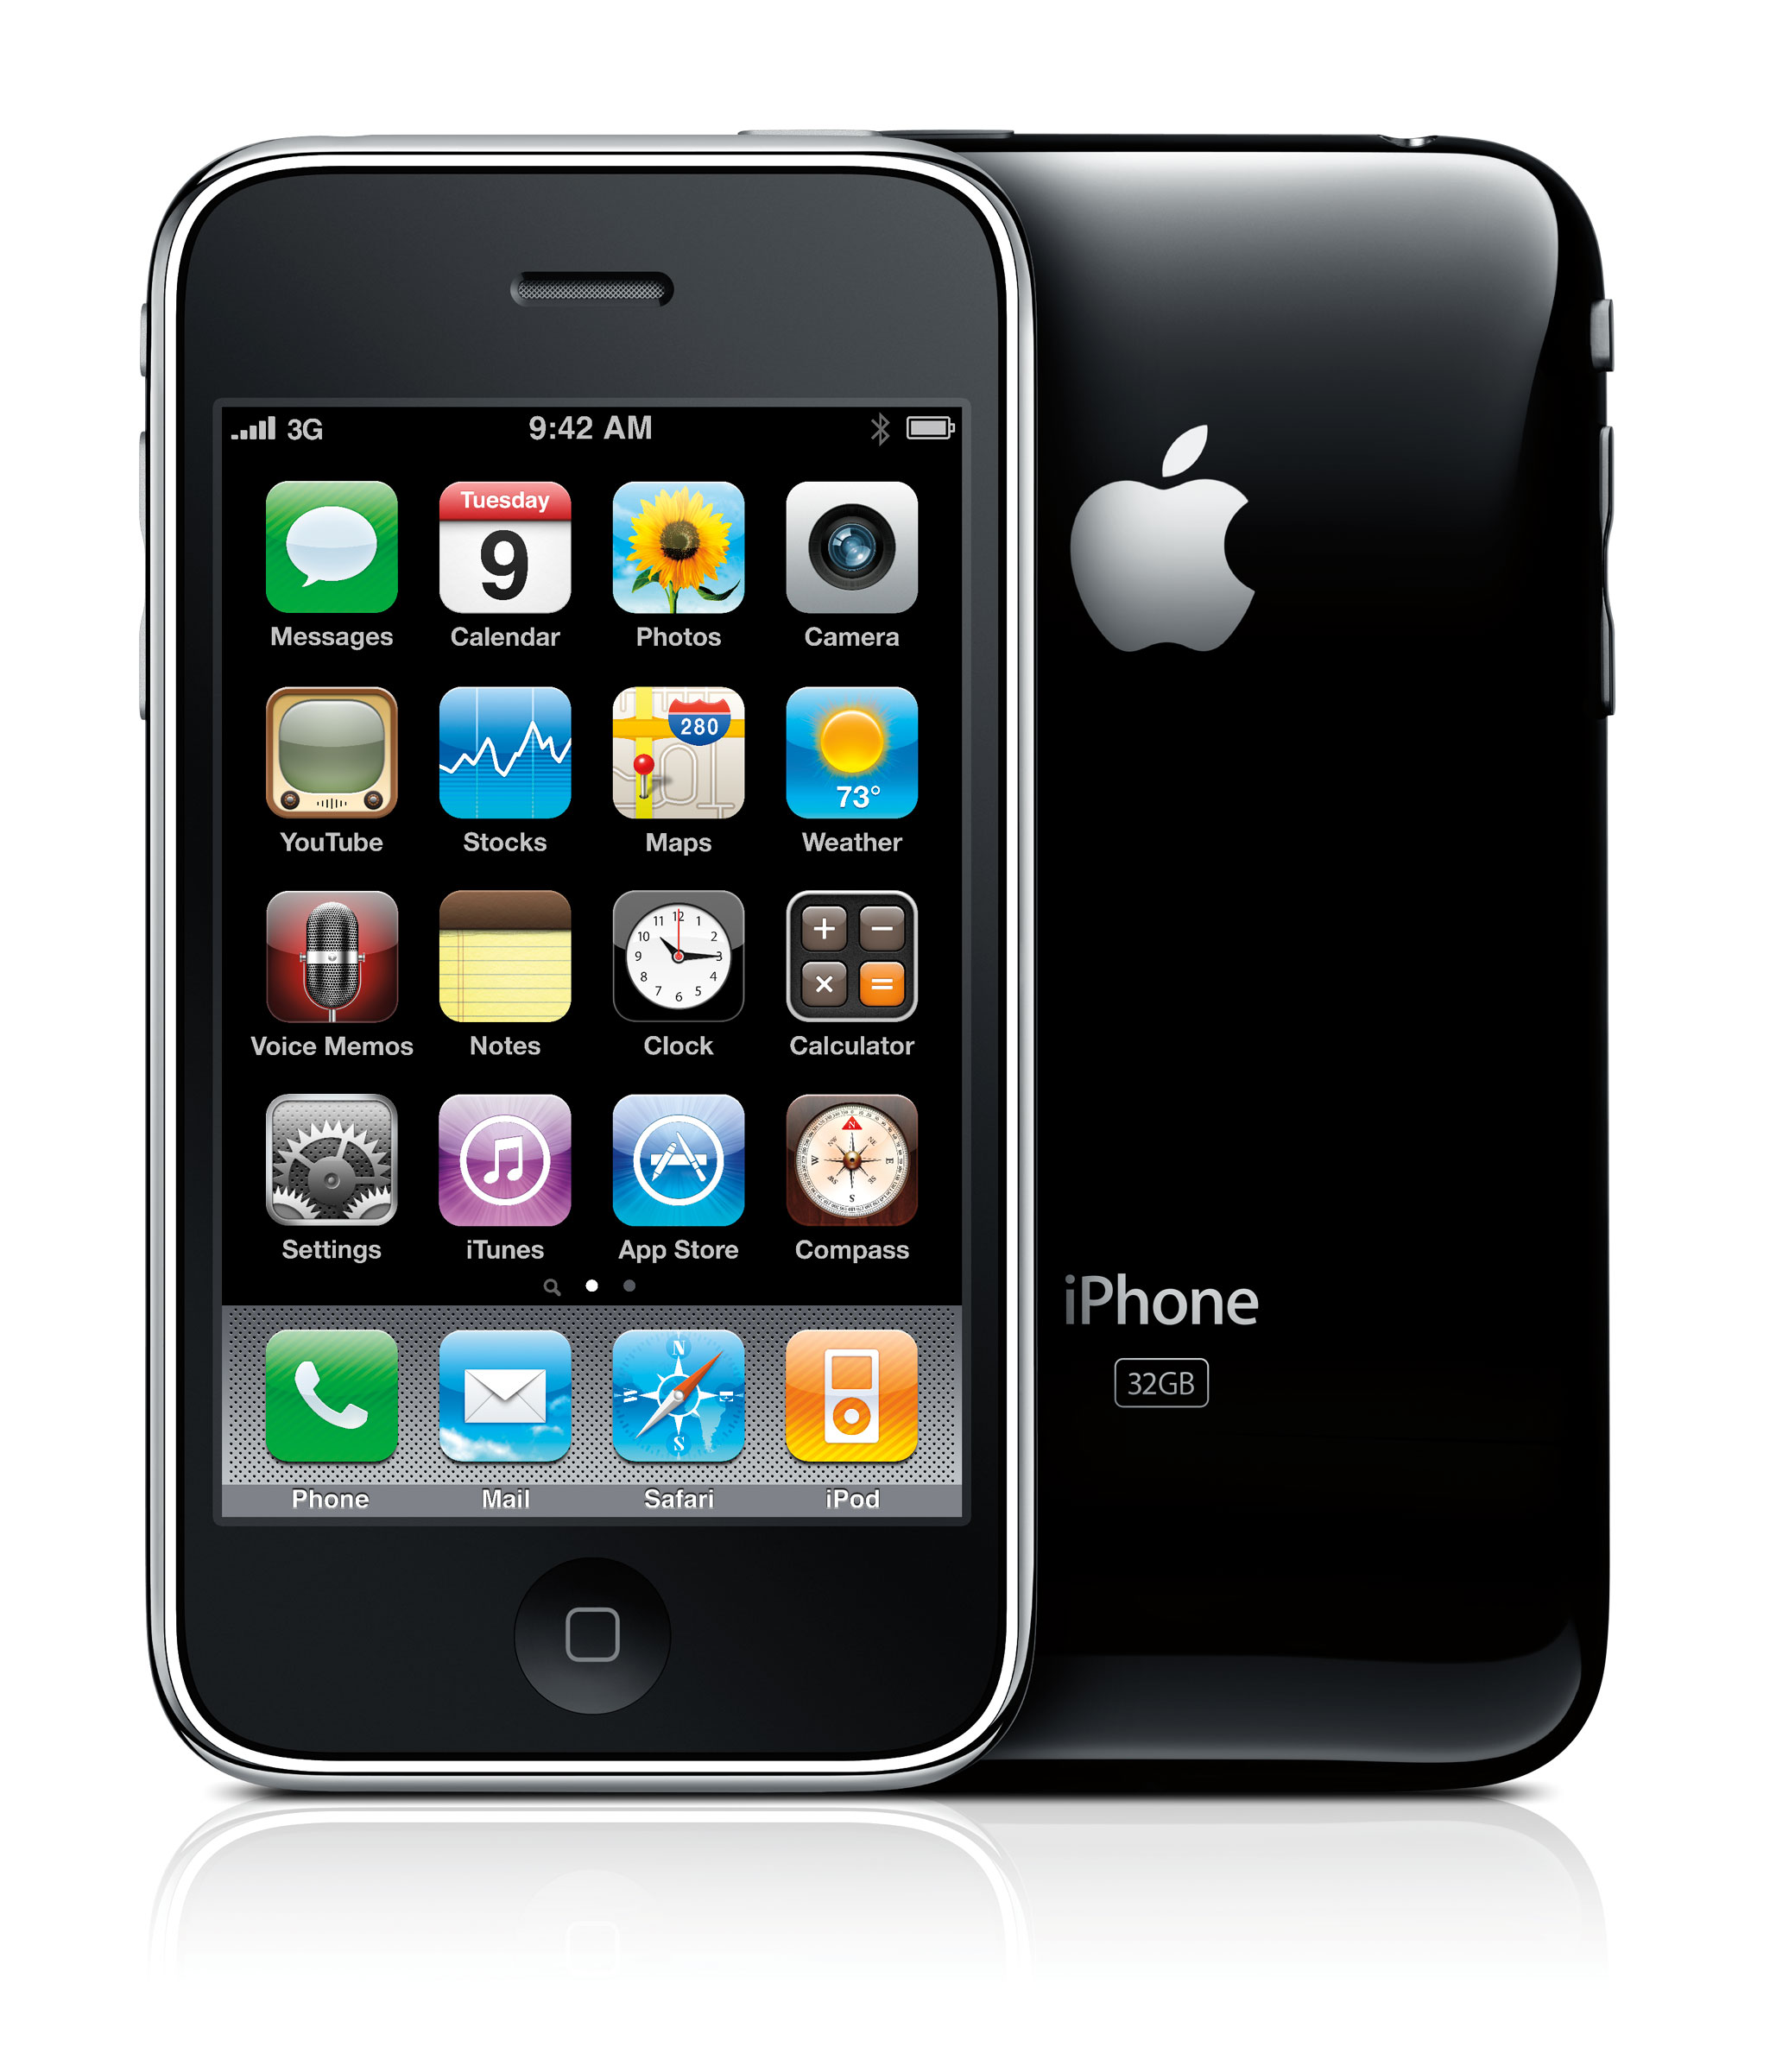 The iPhone 3GS Gets A Reprieve, Will Work With Next iOS